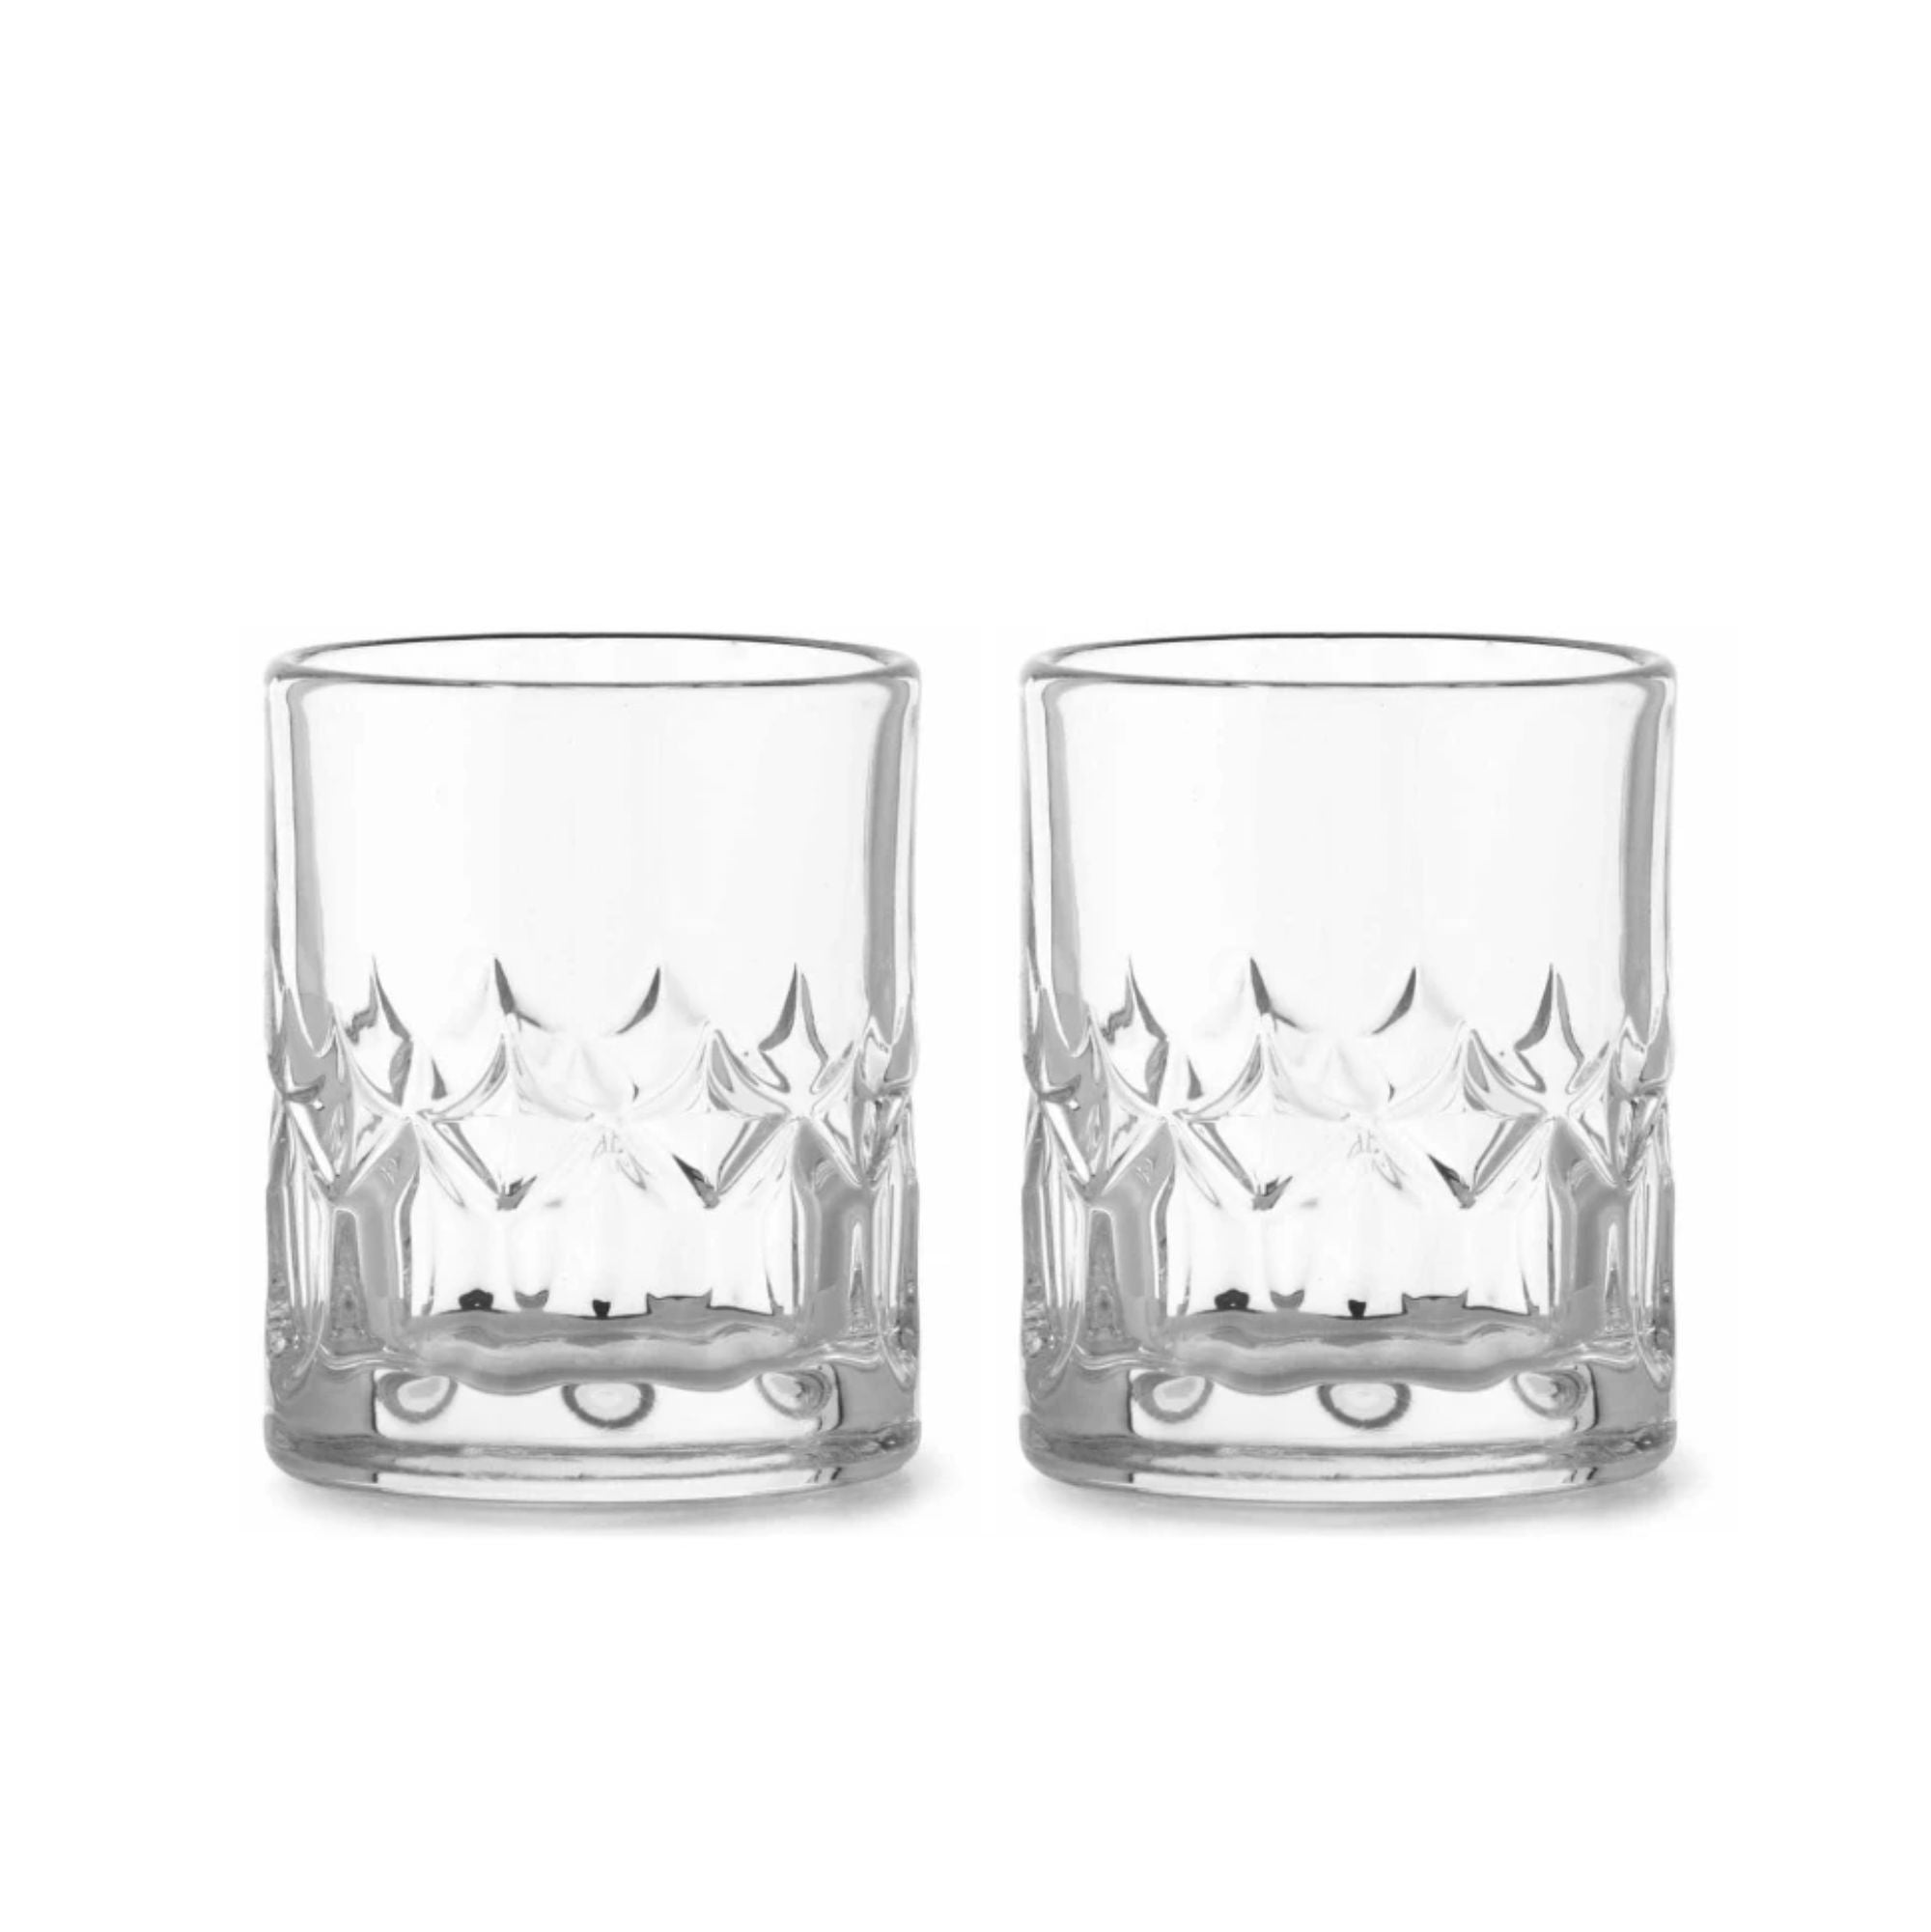 Tivoli Spirit glasses 23cl 2-Pack